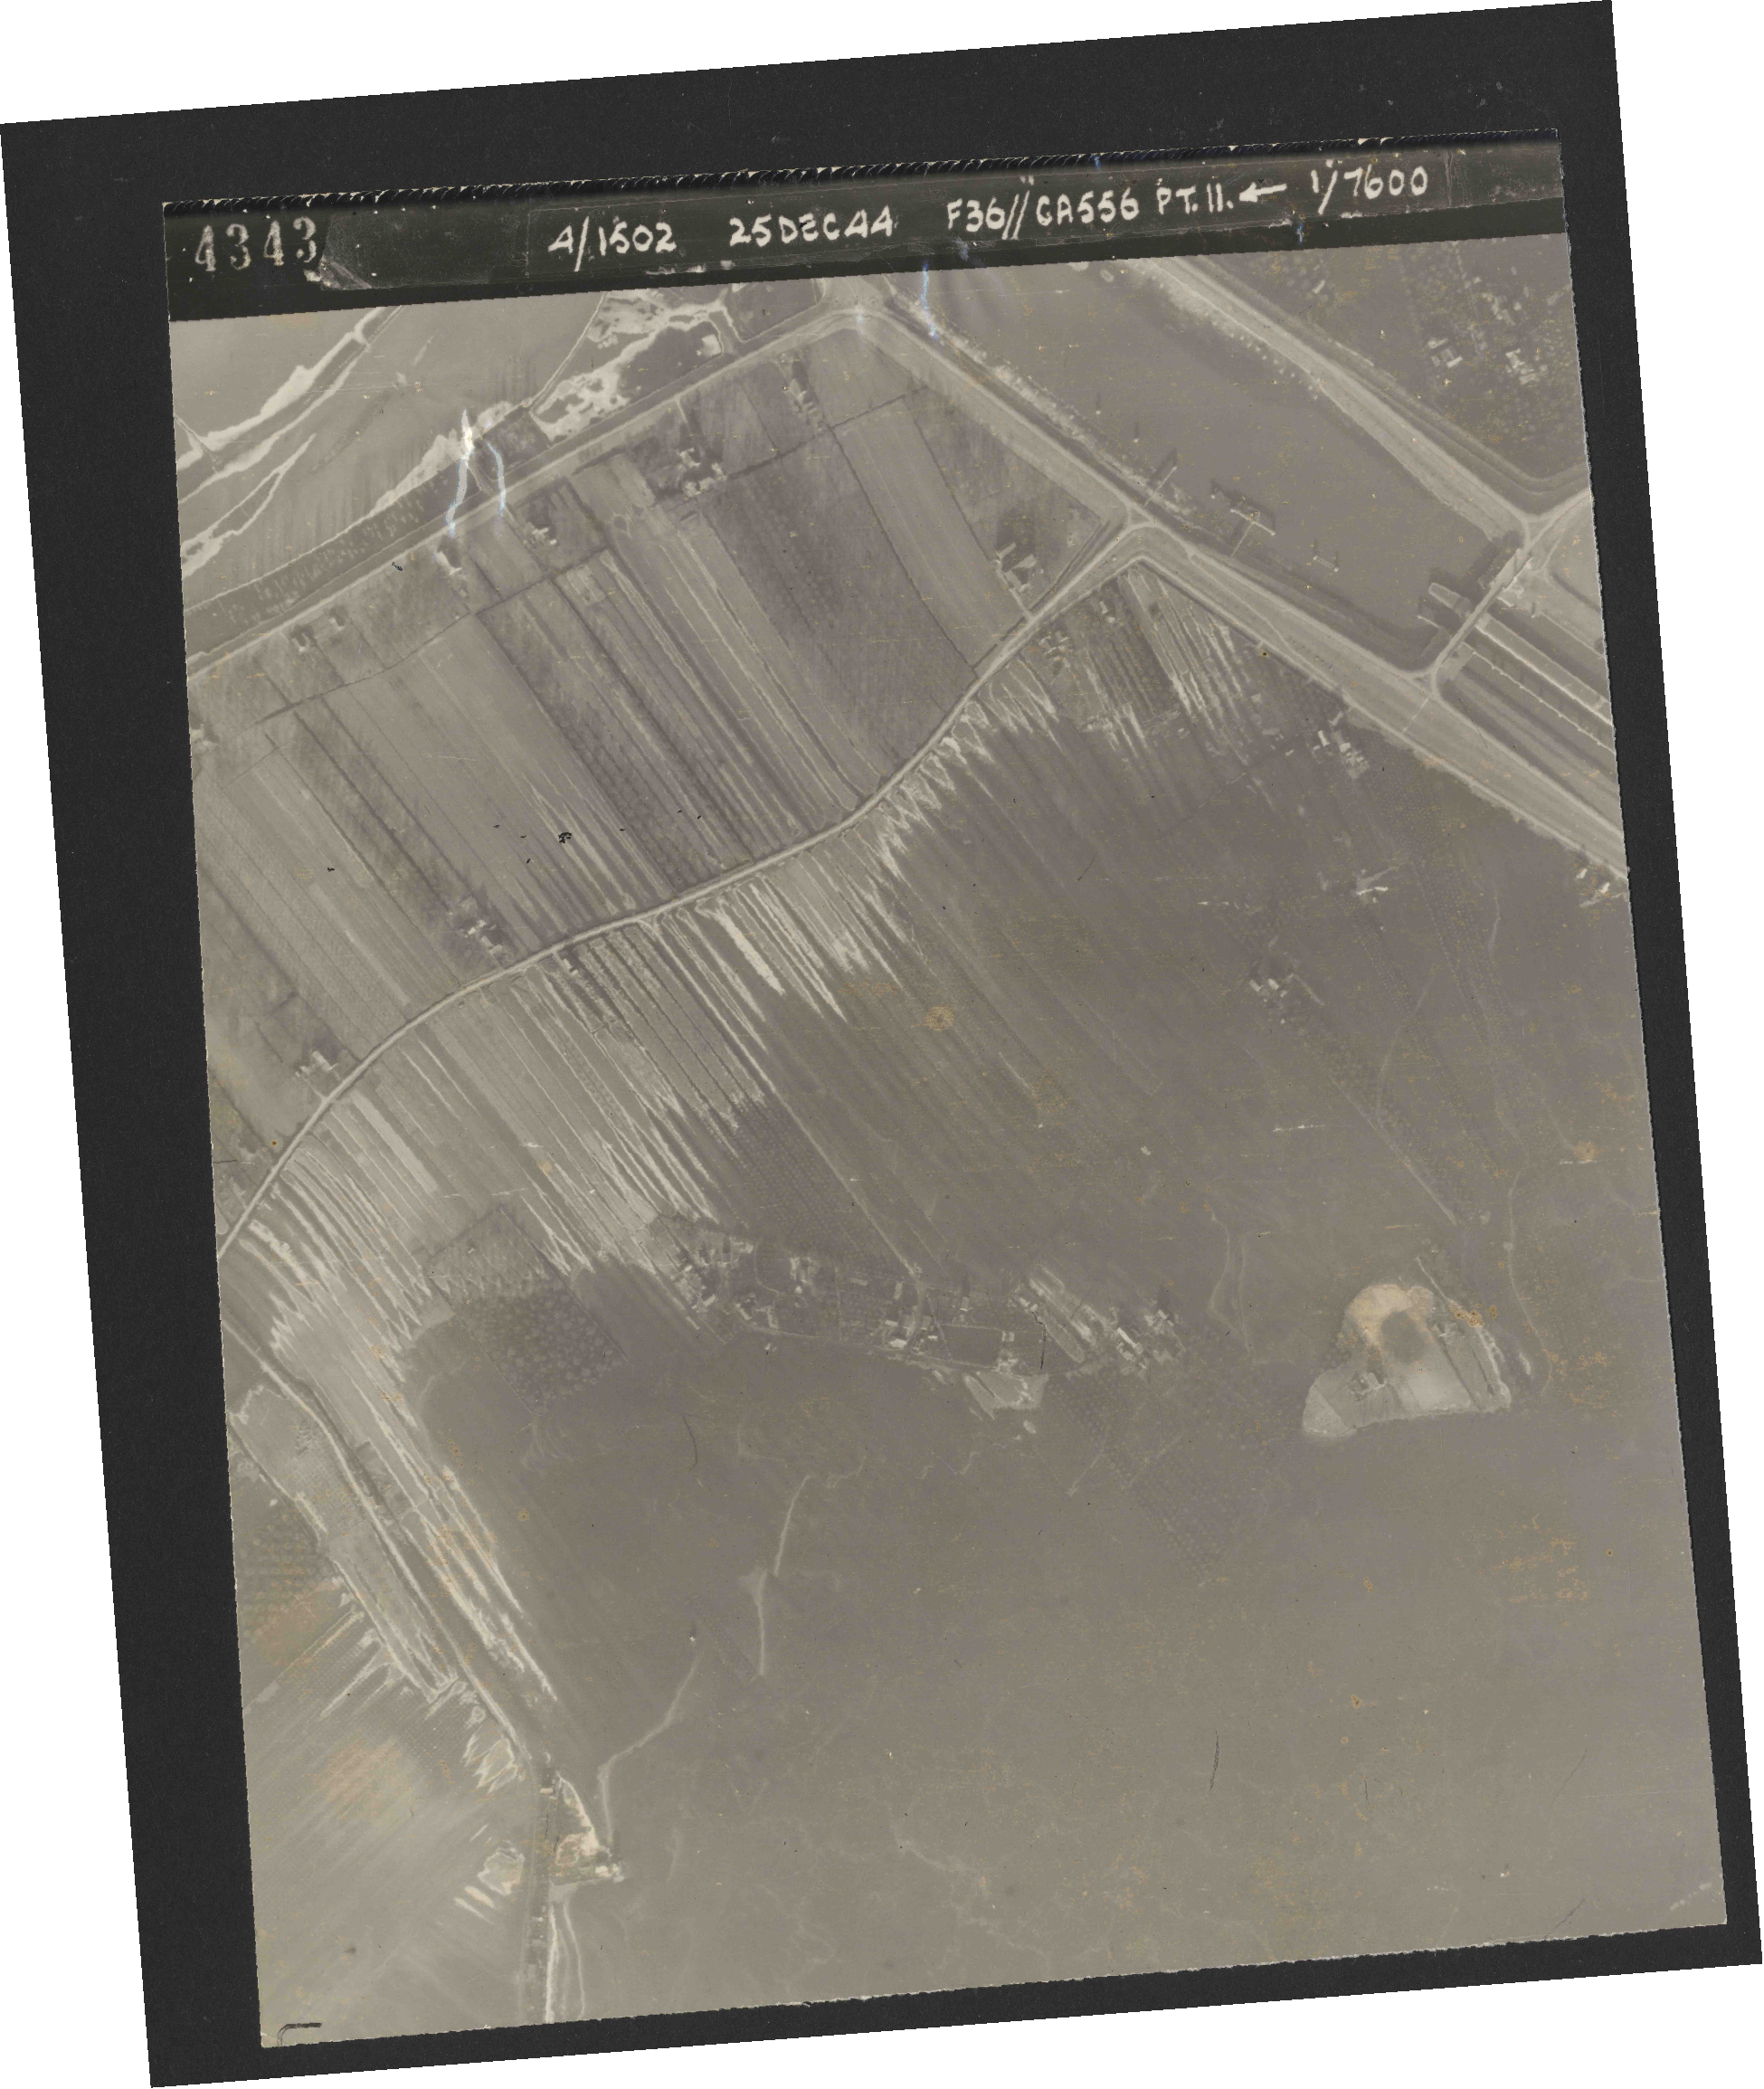 Collection RAF aerial photos 1940-1945 - flight 306, run 11, photo 4343